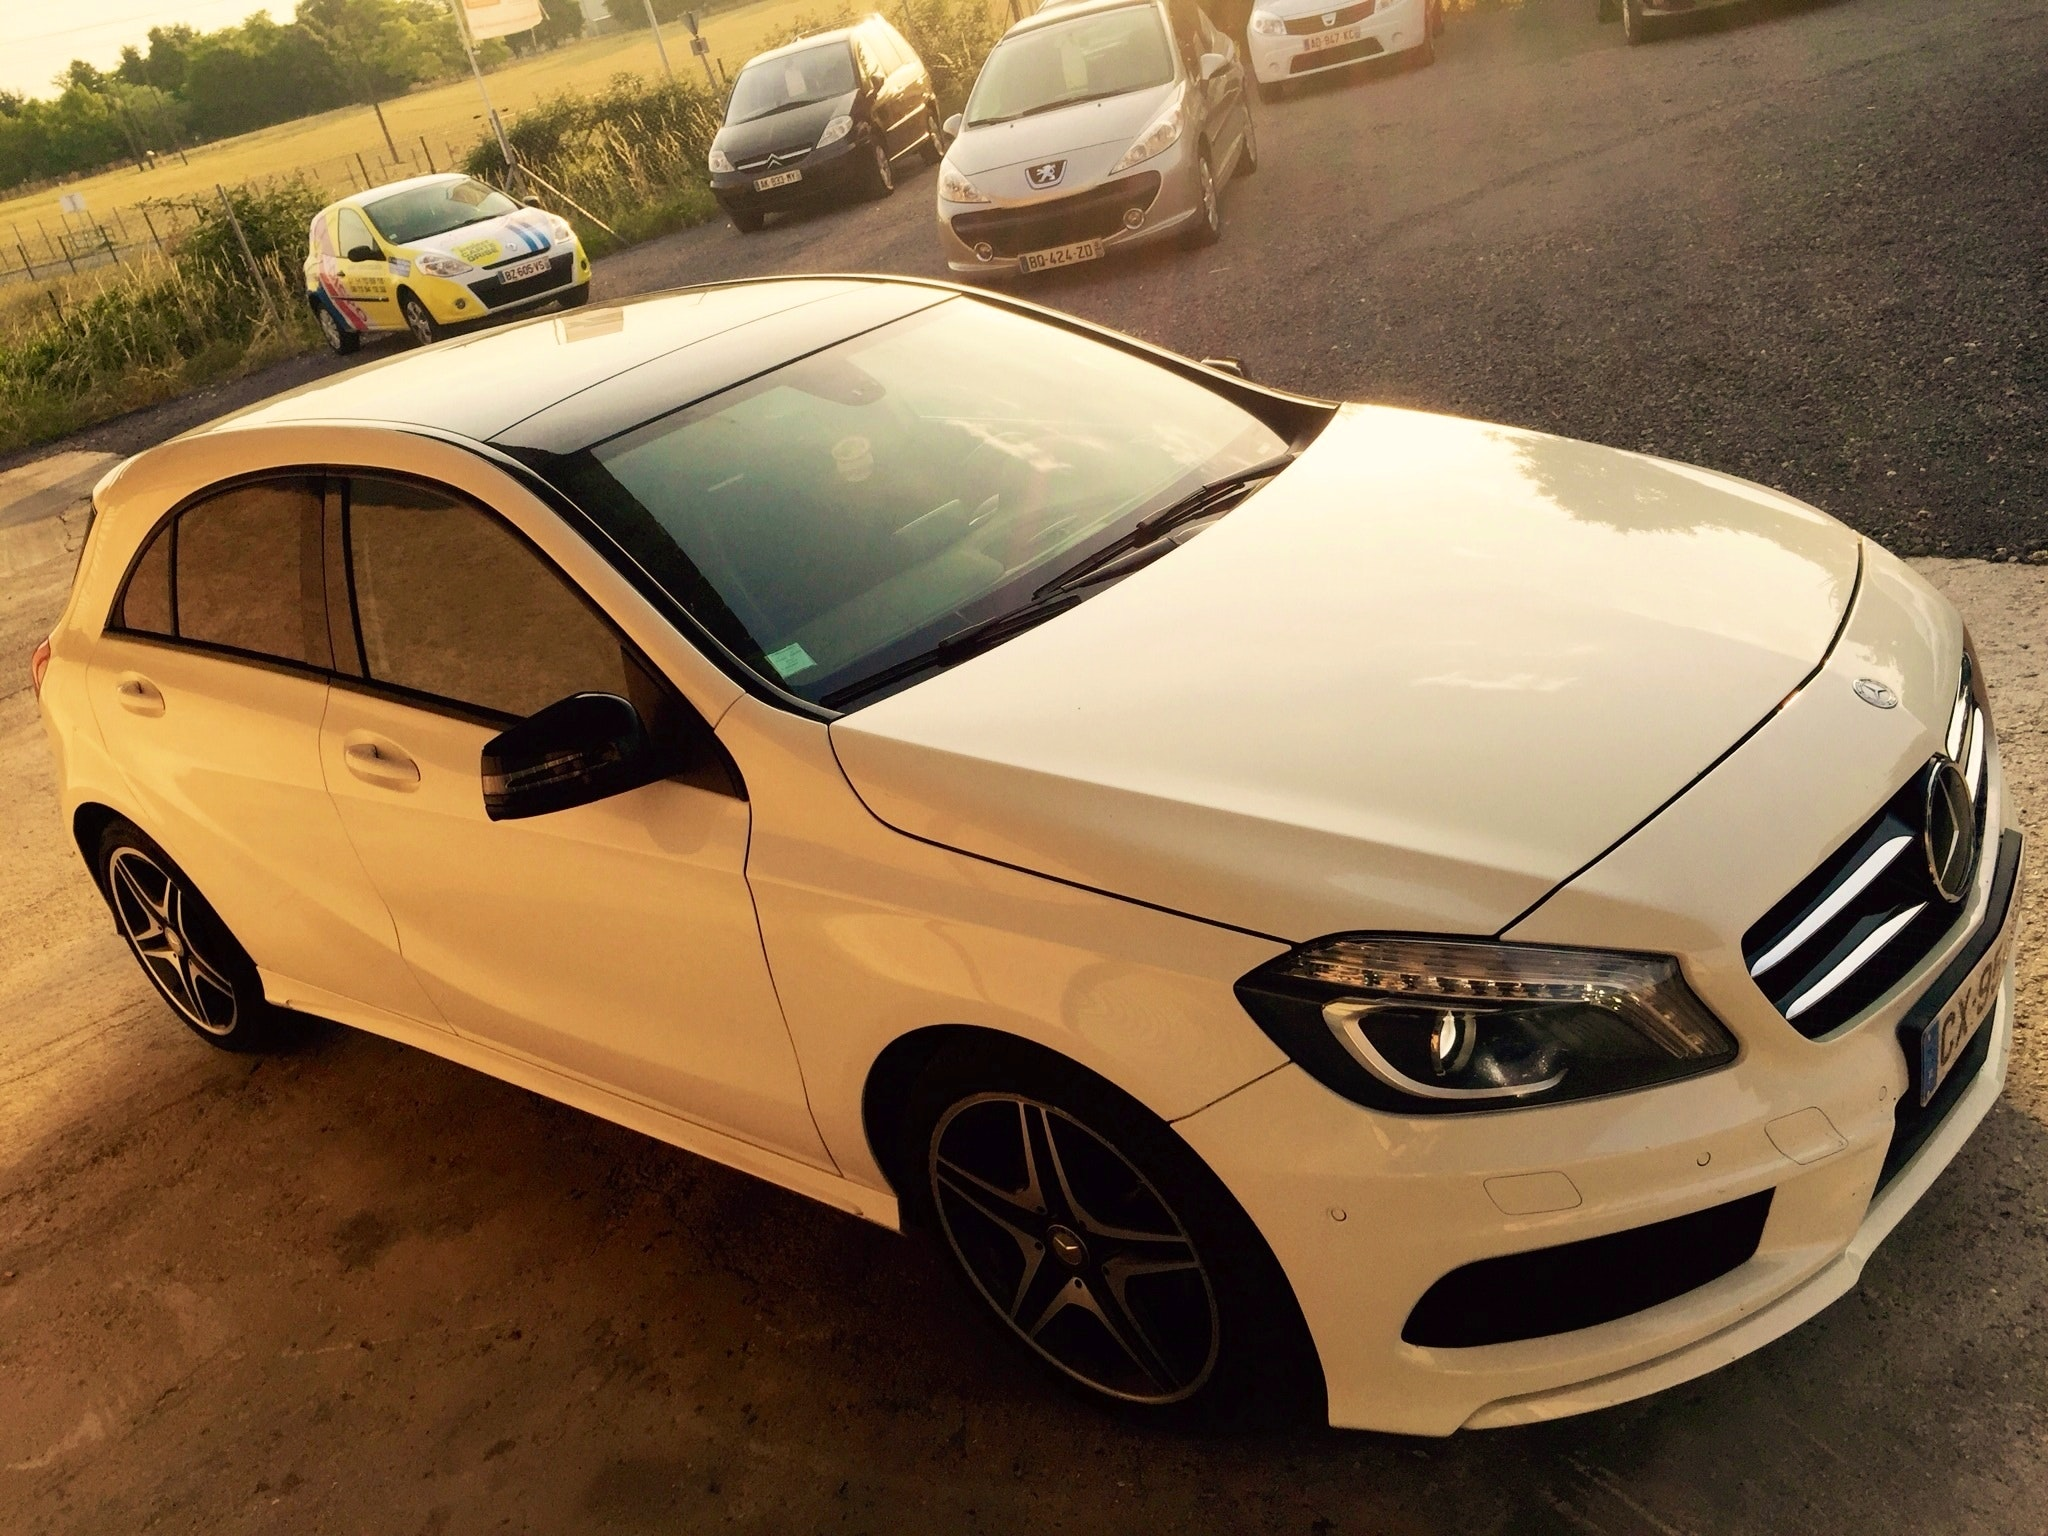 Mercedes Class a200 cdi amg/fascination full options, 2013, Diesel, automatique